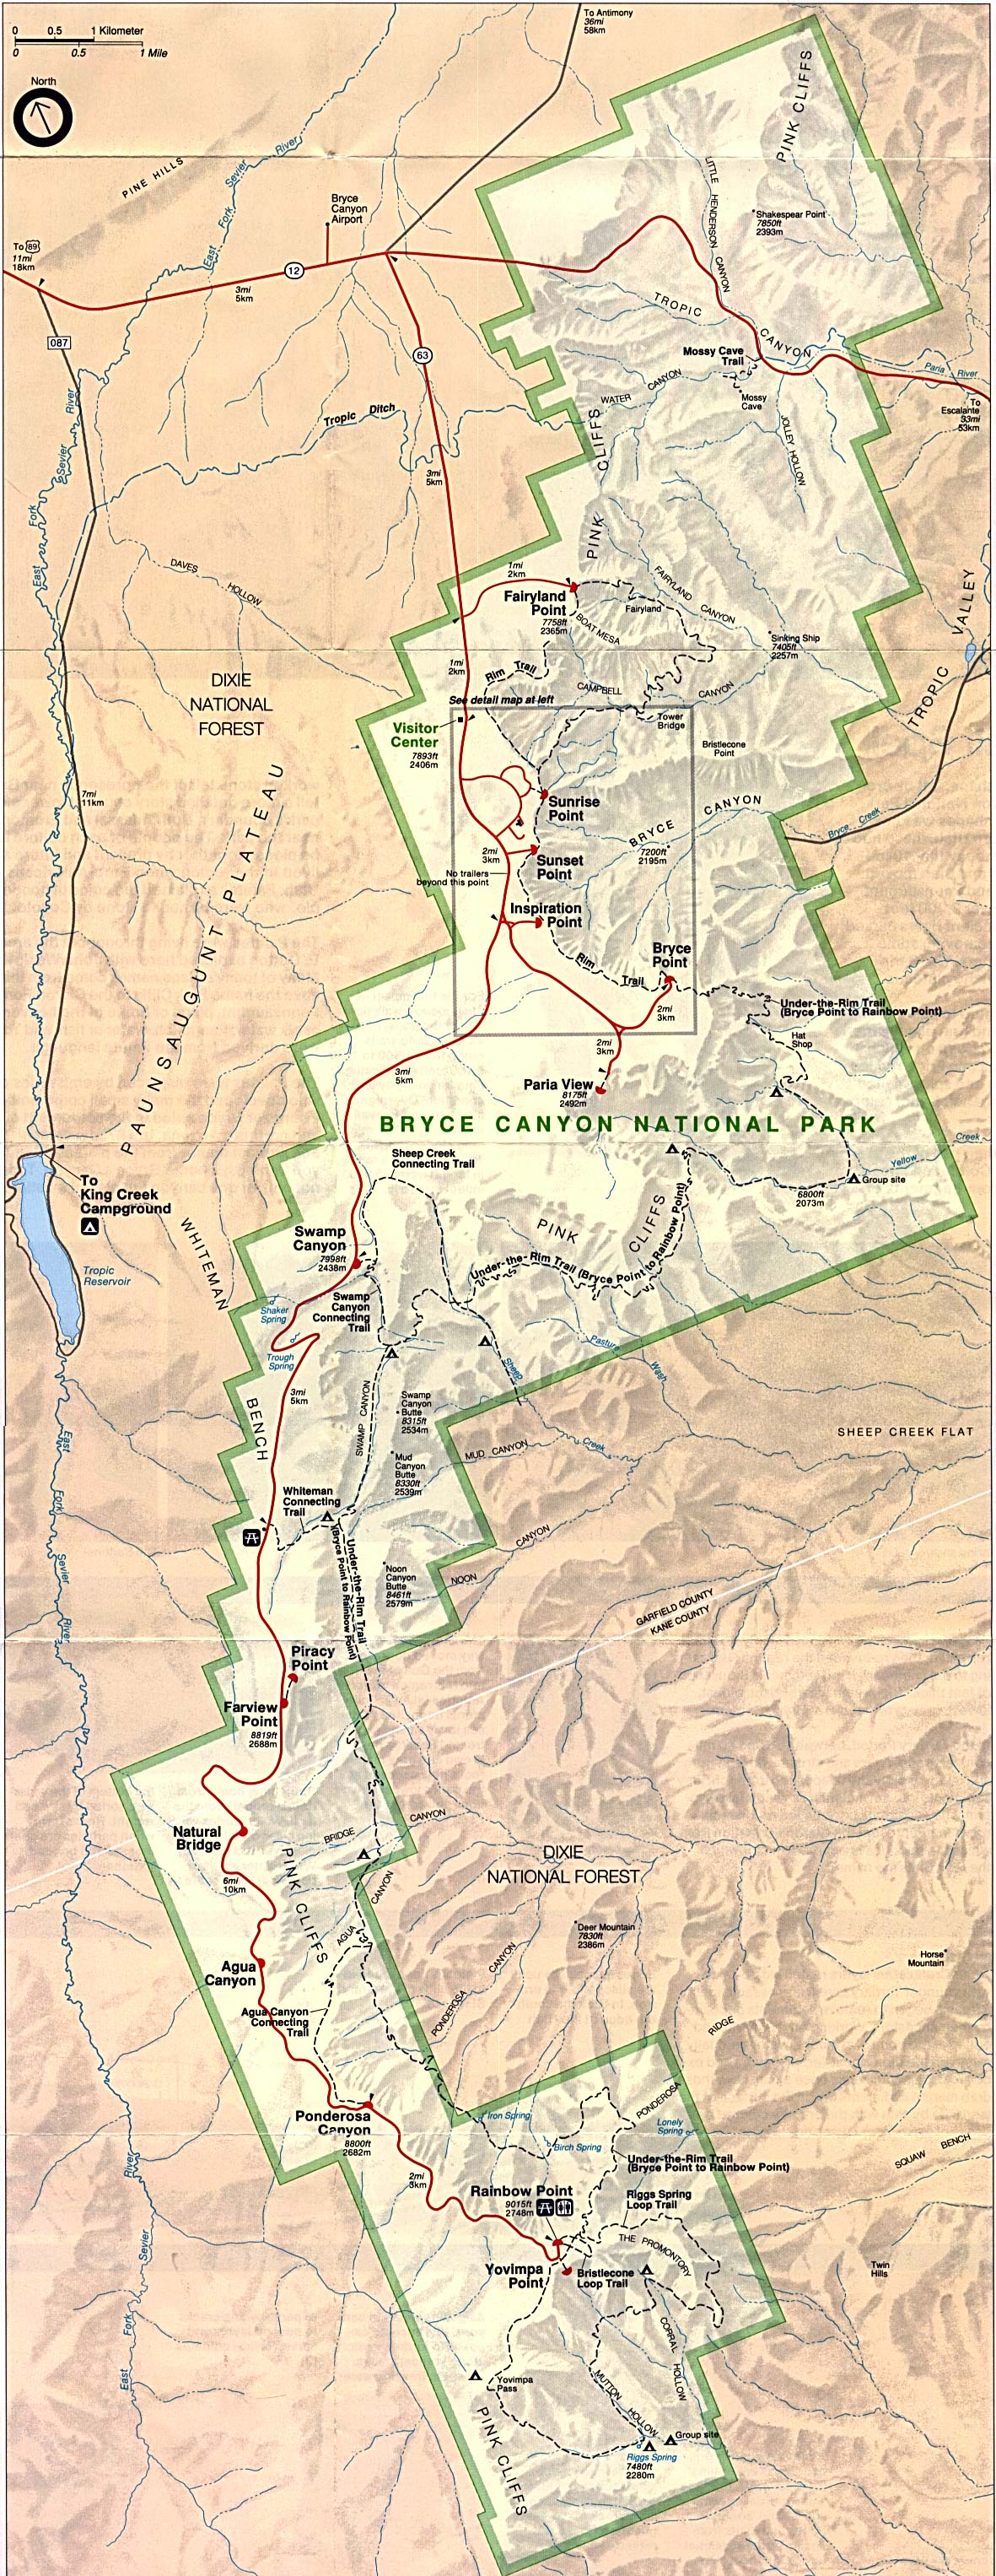 United States National Parks And Monuments Maps PerryCastañeda - Utah national parks map